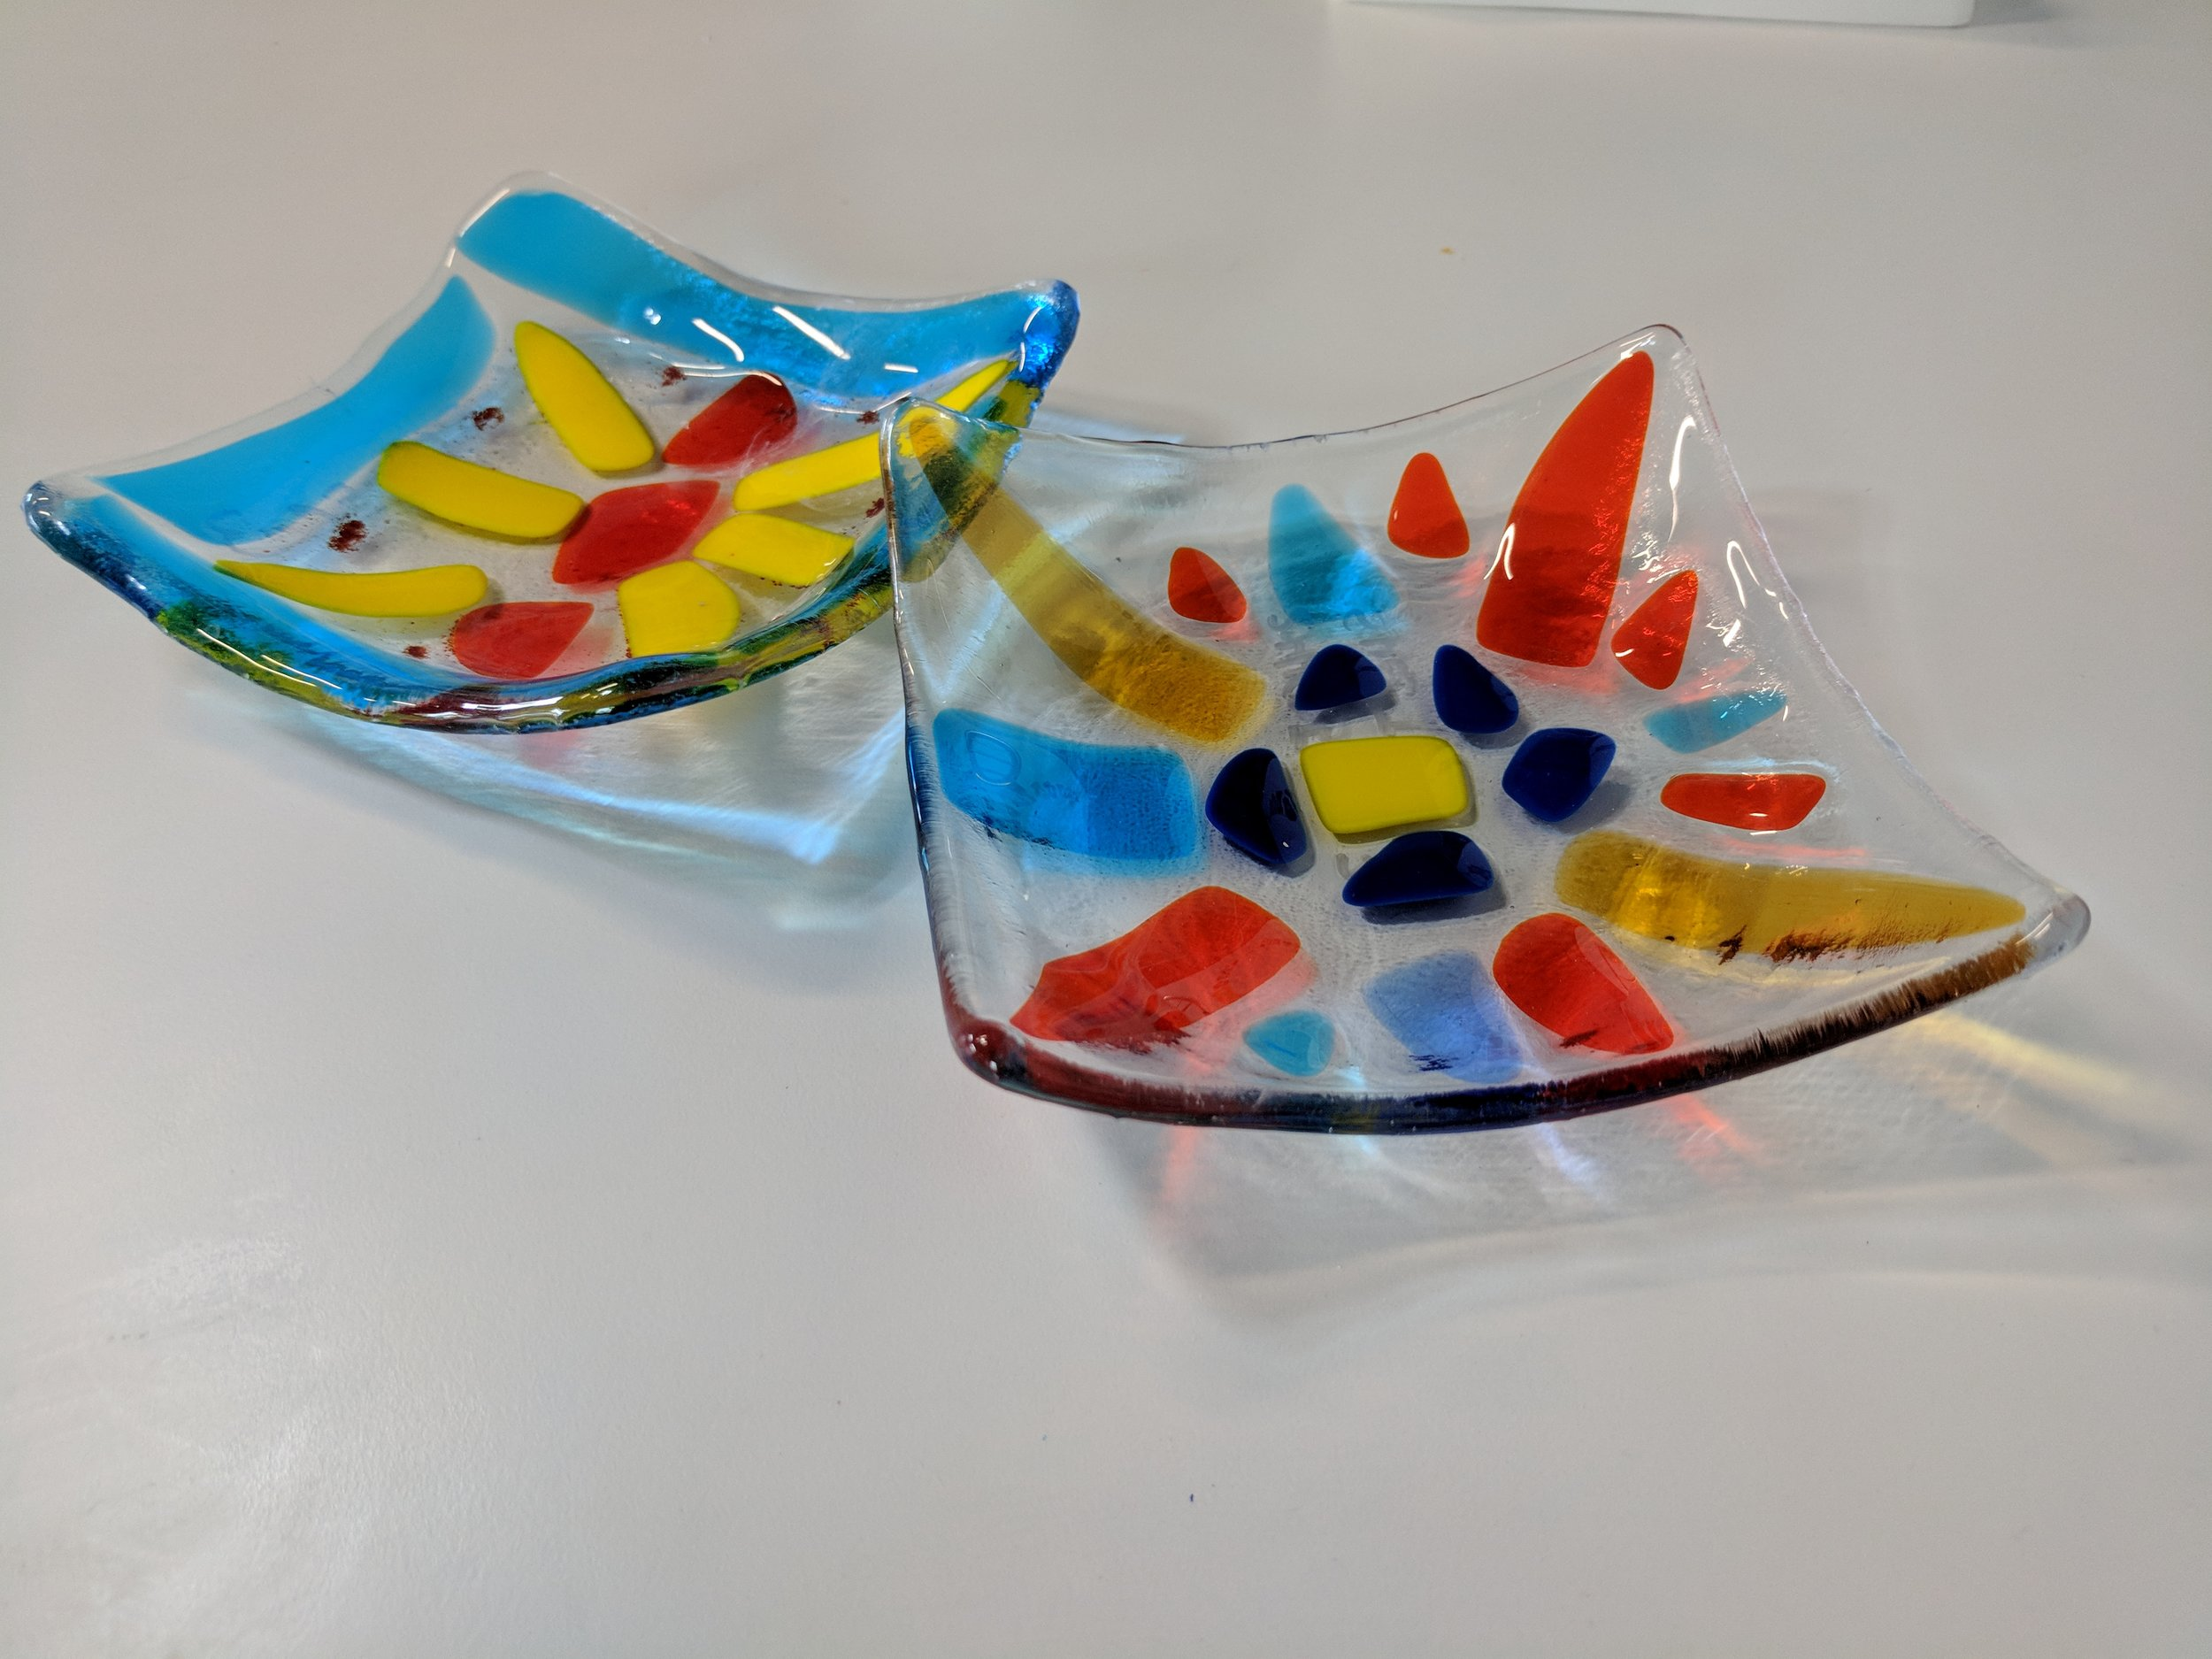 Glass Fusing!Break it & Make it. - Break it and Make it - A Glass Fusing workshop is an ideal journey for the beginner and for those who have taken beginning glass fusing classes in the past and would like to refresher lesson. With step by step instructions, you will learn how to break glass and to make an eight-inch beautiful contemporary fused glass basket or plate with fused and slumped glass techniques. Join us today.Length: Two to Three HoursMedium: ClayActivity: CeramicVenue: Your place or our studioSupplies: All supplies included.